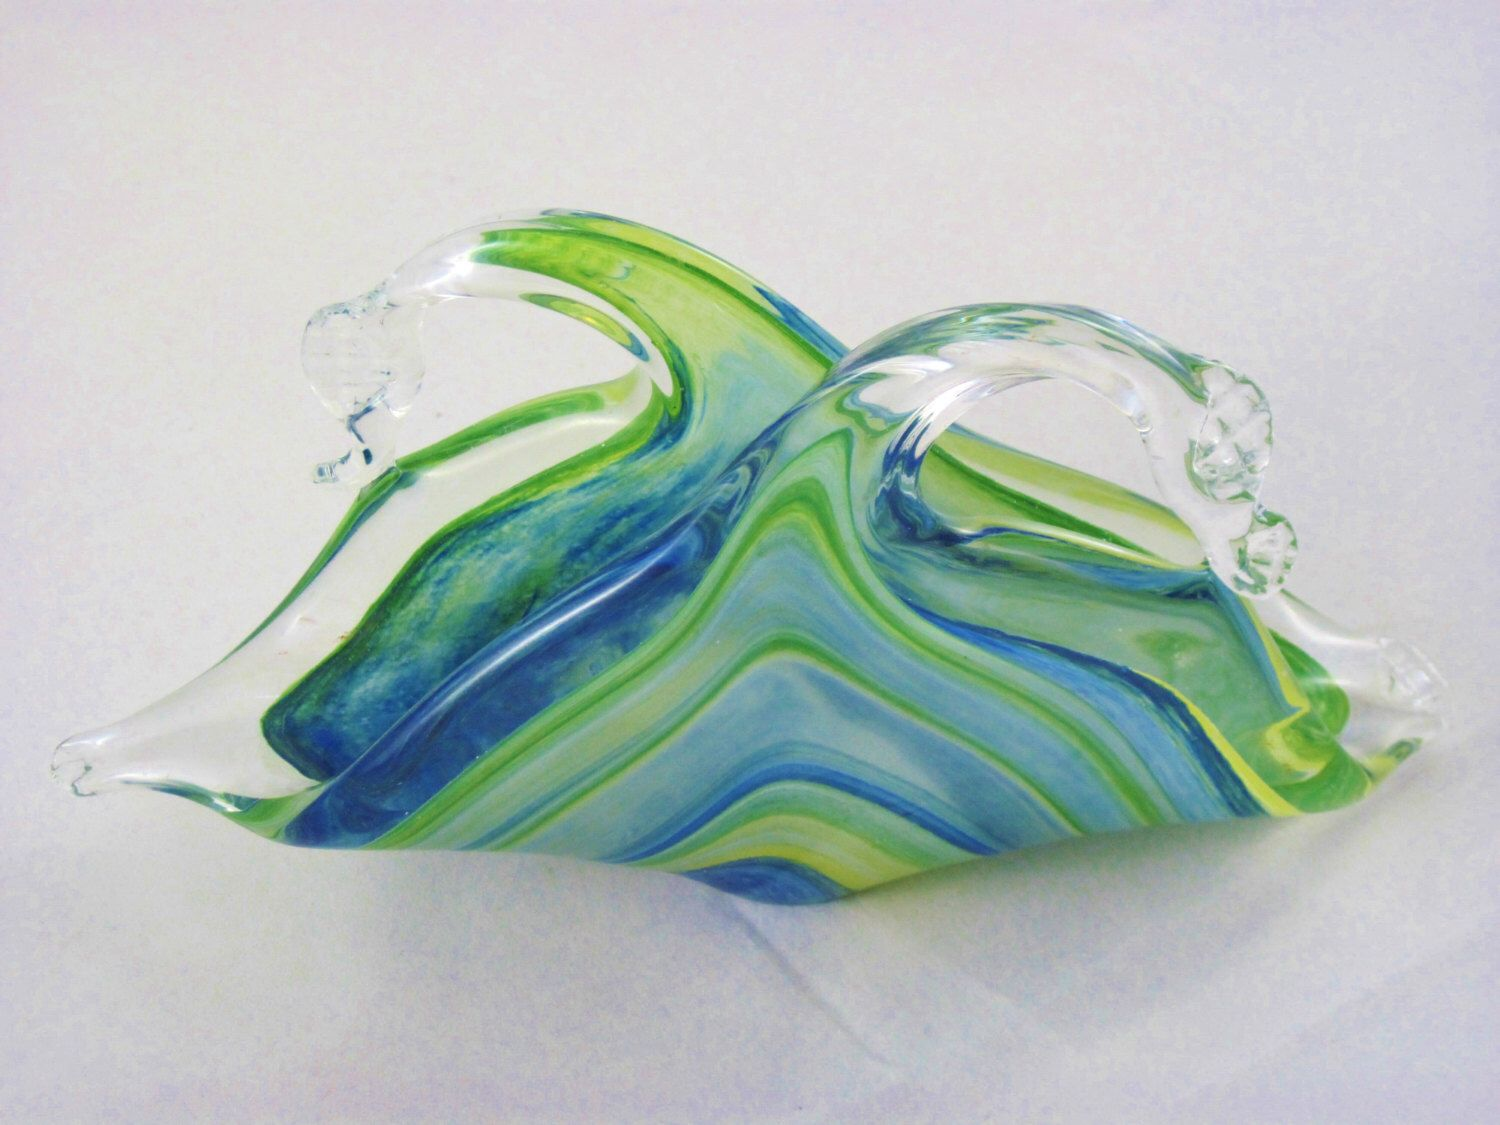 AMAZING Vintage Murano Italy Hand-Blown Glass Ashtray Collectible Art Glass Display Piece Work of Art Swirls of Glass Colors Unique Gorgeous